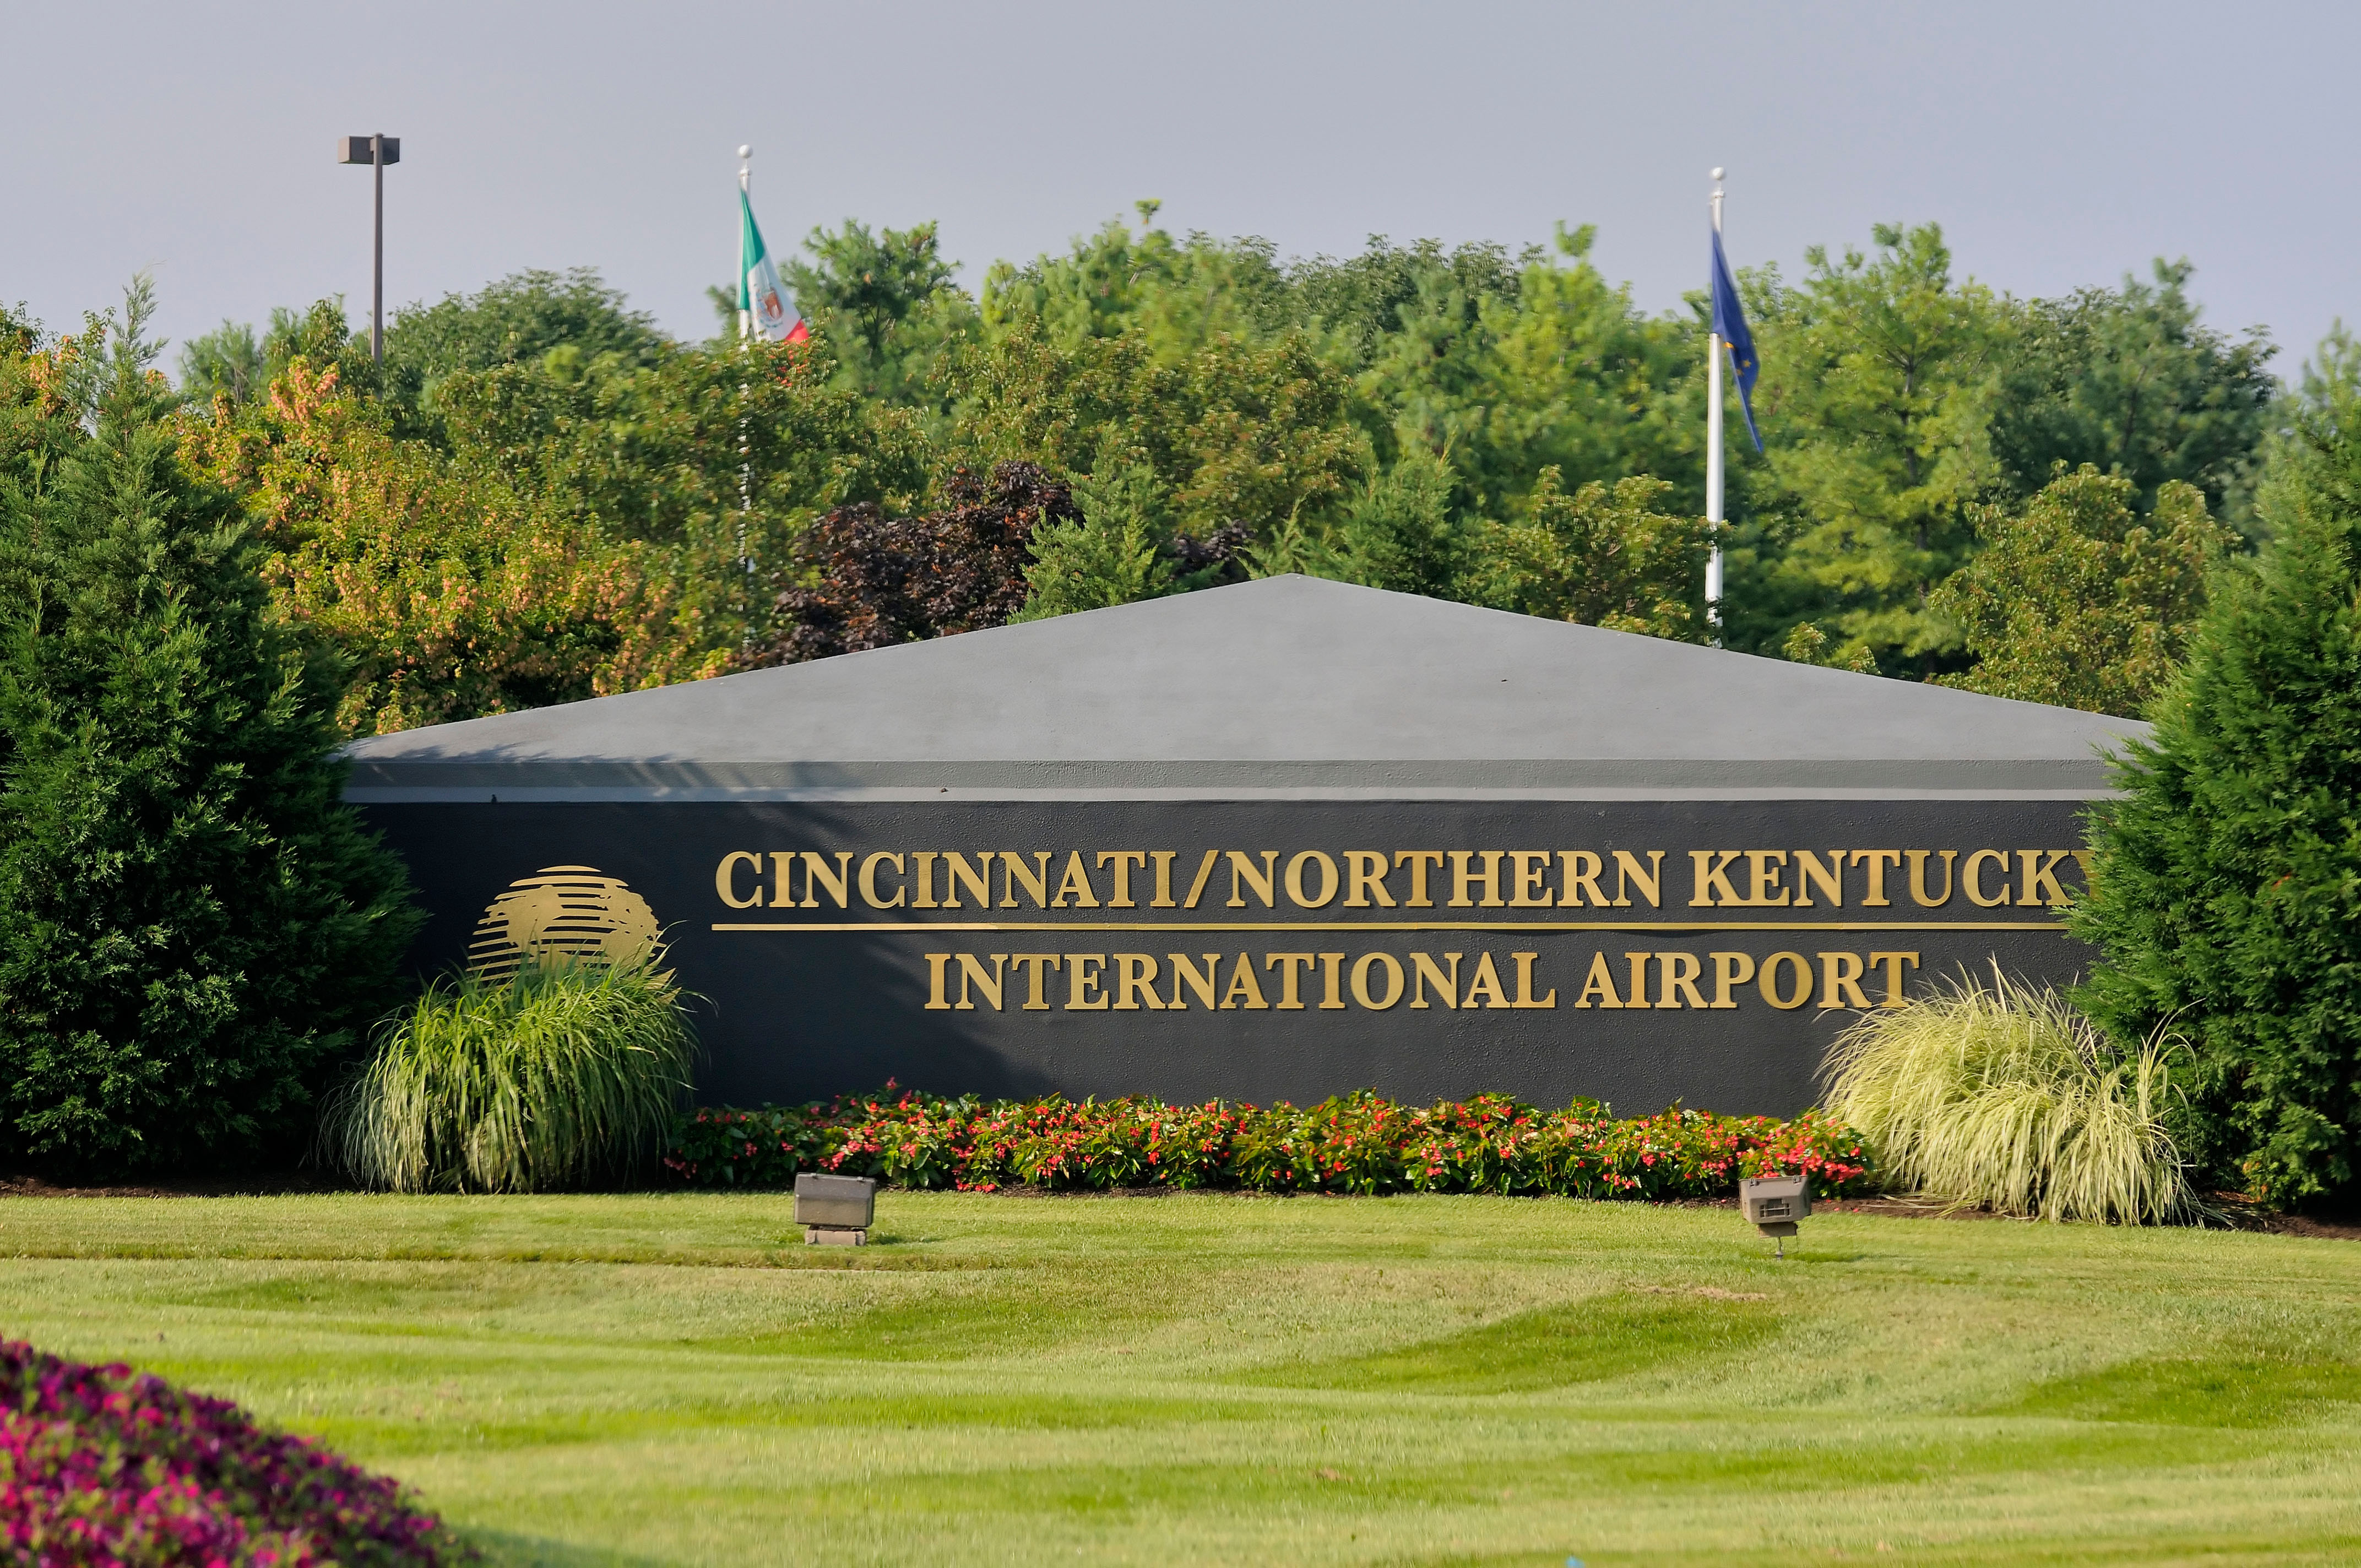 Entrance sign for the Cincinnati/Northern Kentucky International Airport